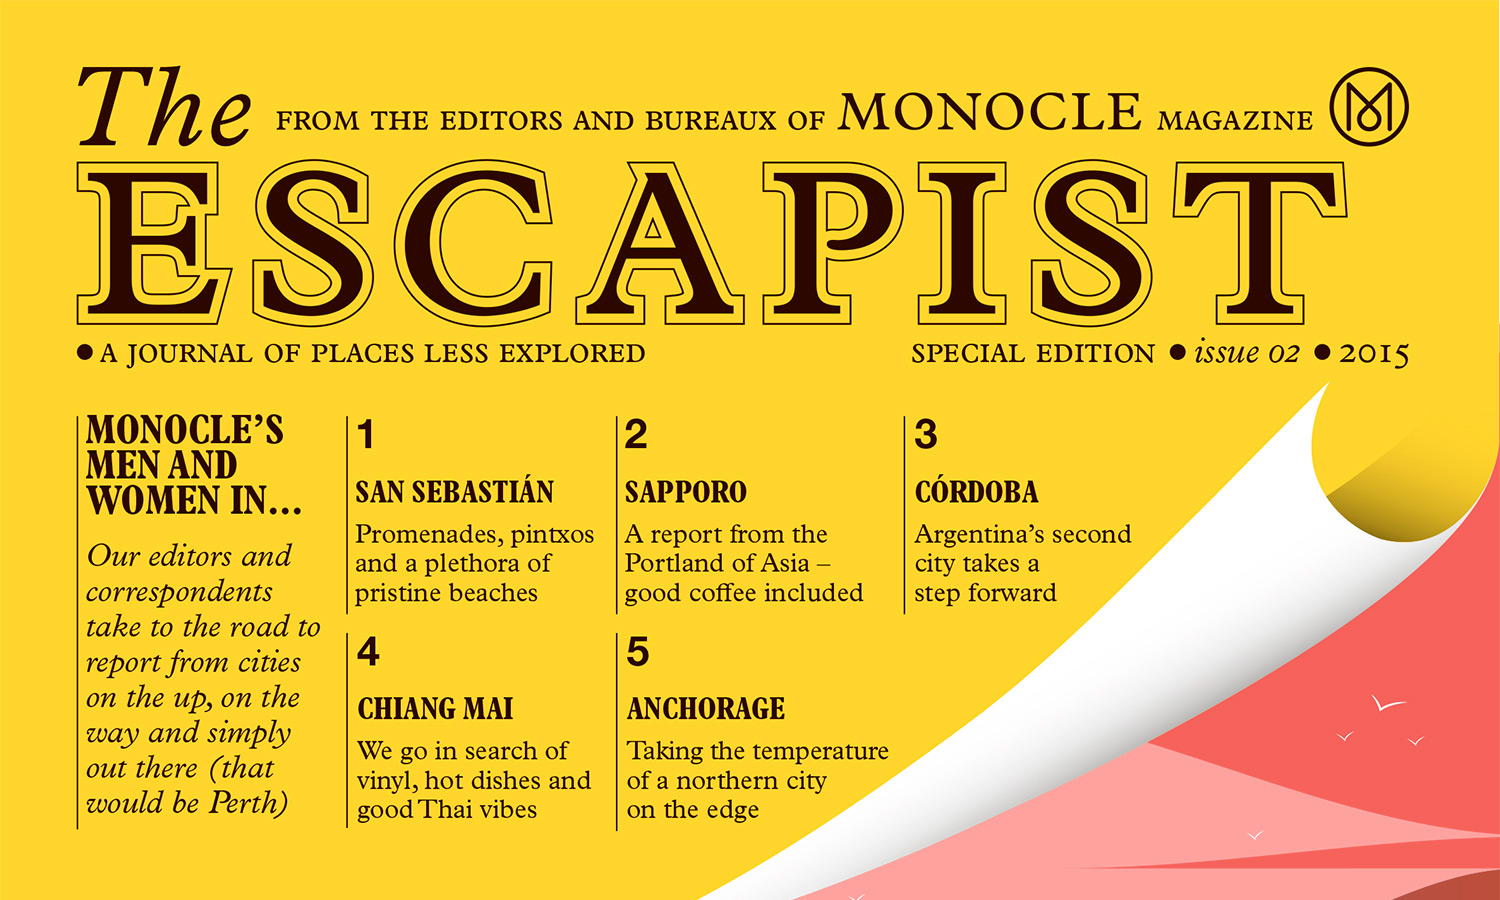 Monocle-Escapist-Intro-featured-2